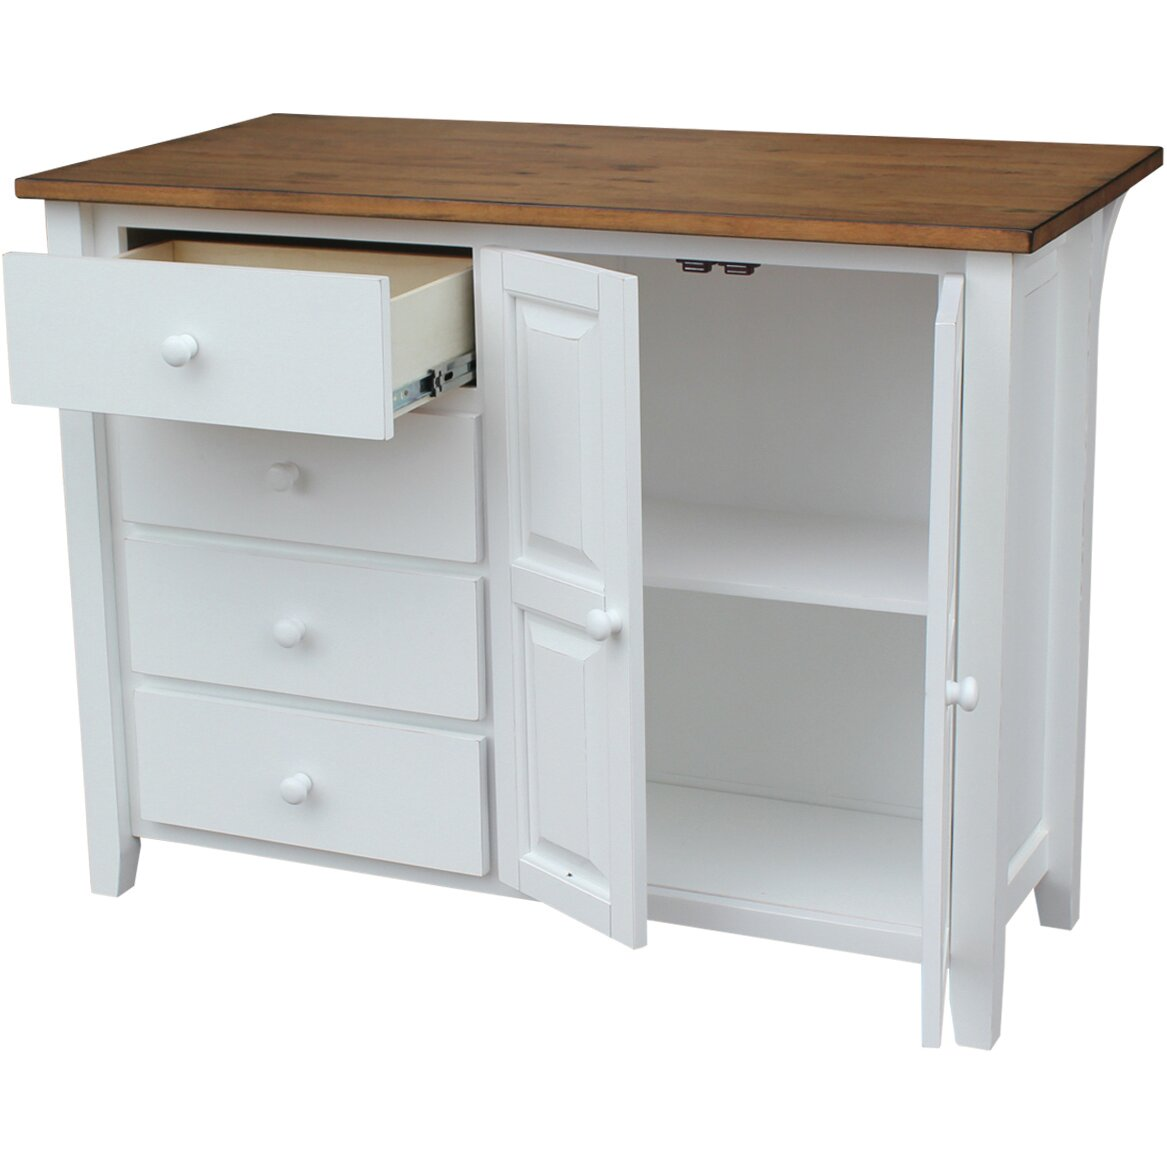 Warefair Com: Just Cabinets Belmont Kitchen Island